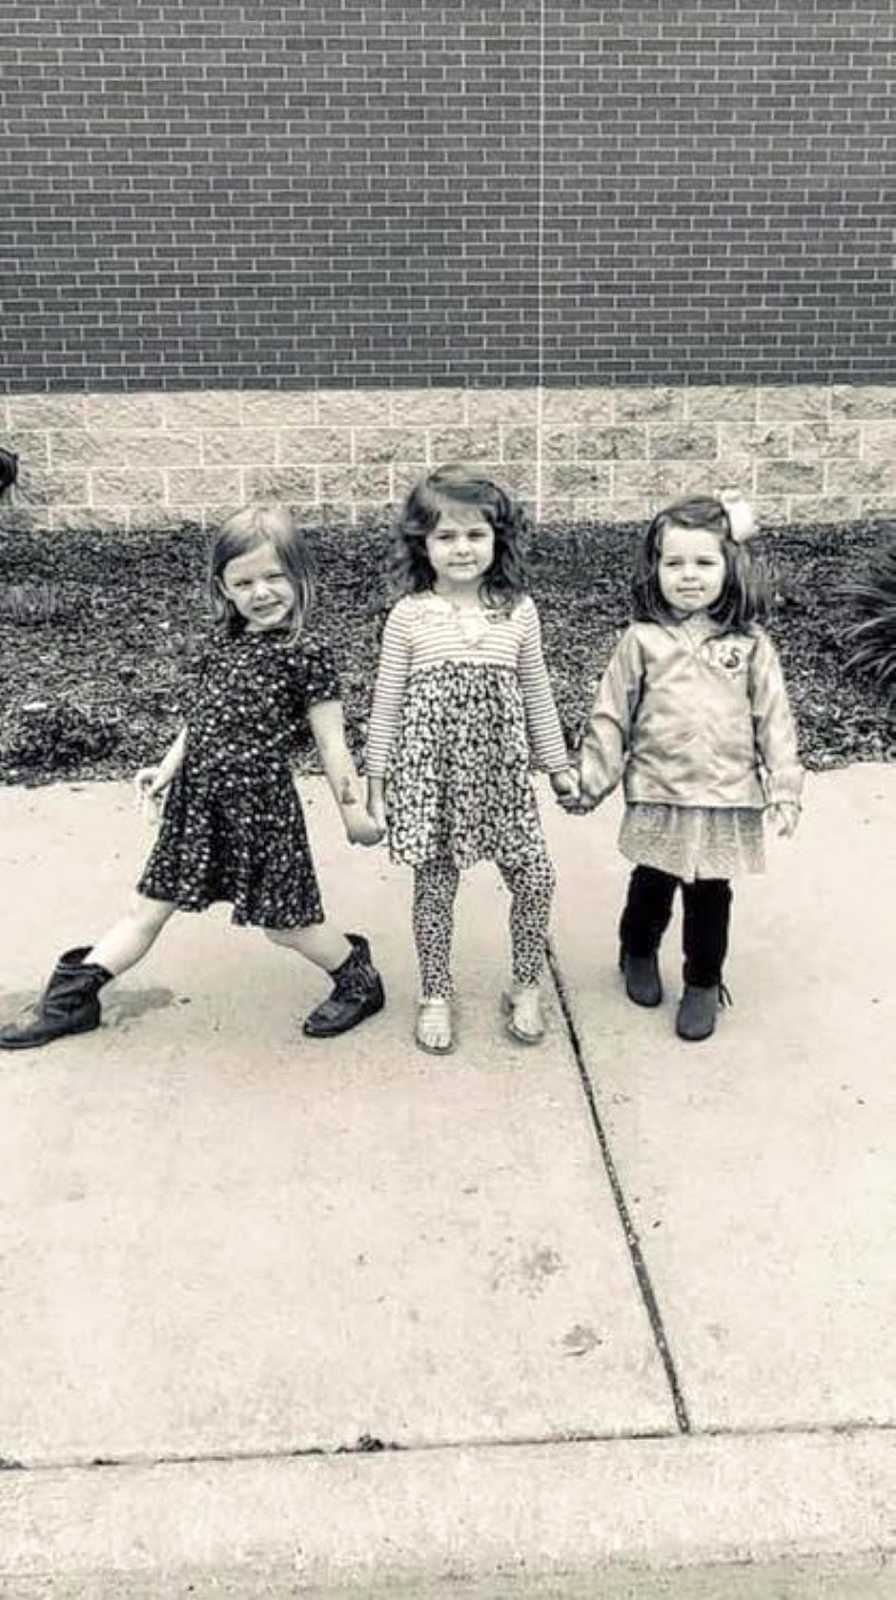 Mom takes photo of her three sassy, strong, and confident daughters